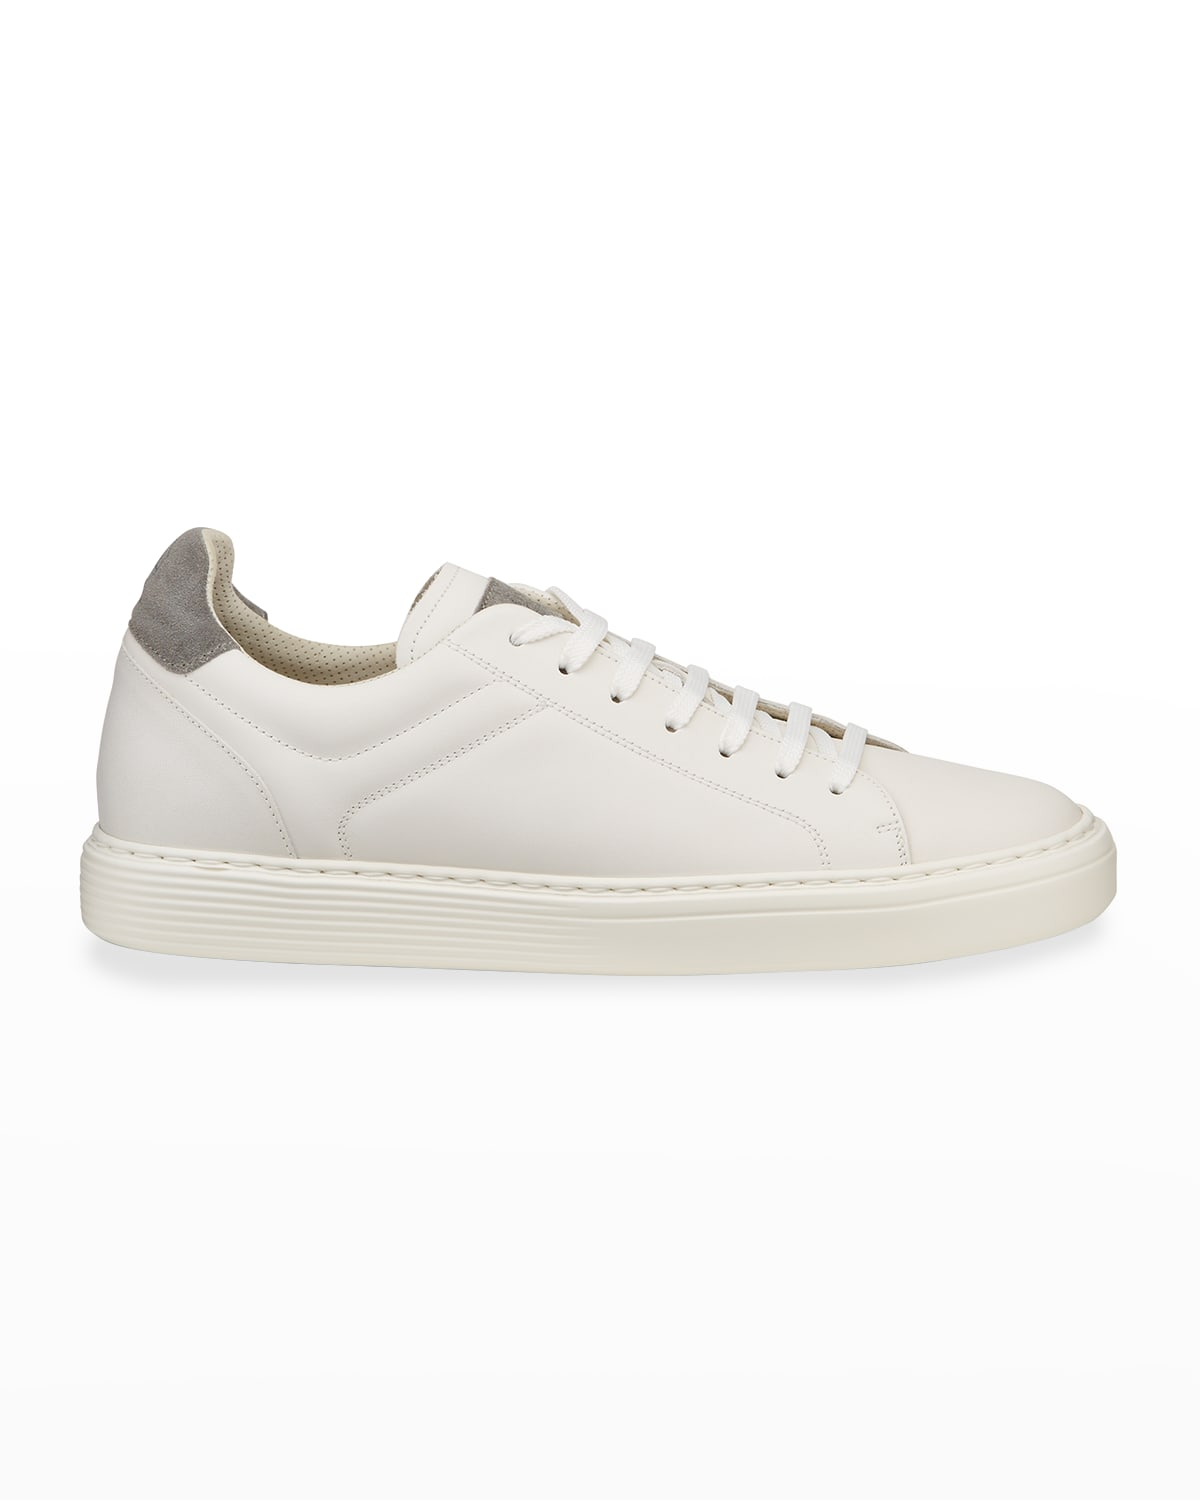 Men's Leather Cup-Sole Low-Top Sneakers